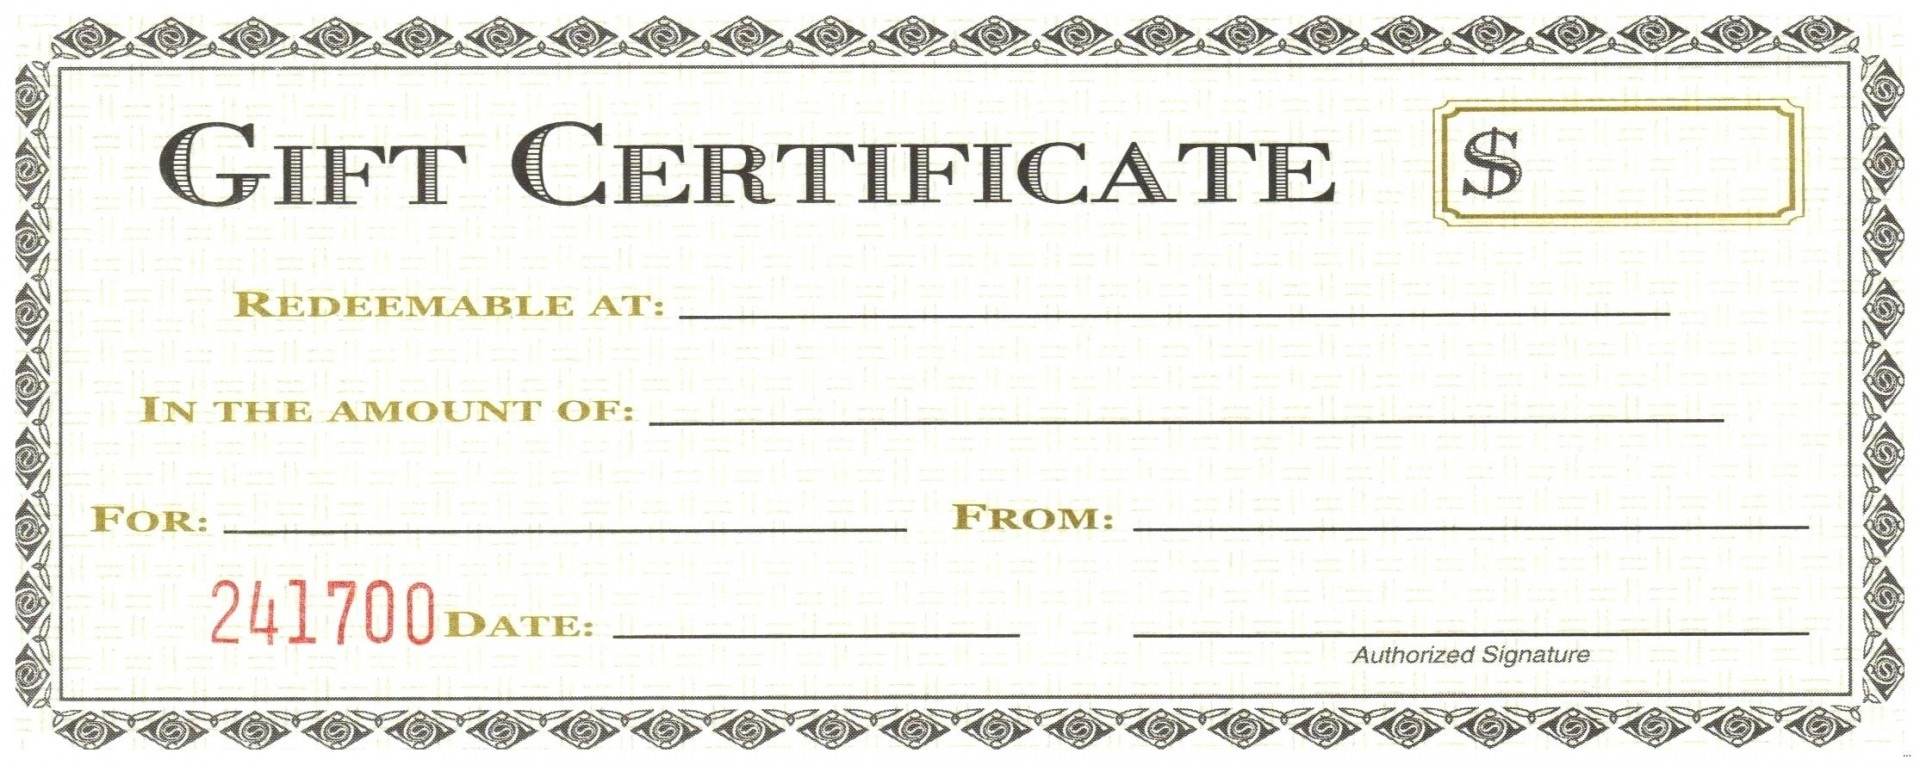 012 Gift Certificate Template Pdf Ideas Certificates Samples Free Of - Free Printable Massage Gift Certificate Templates